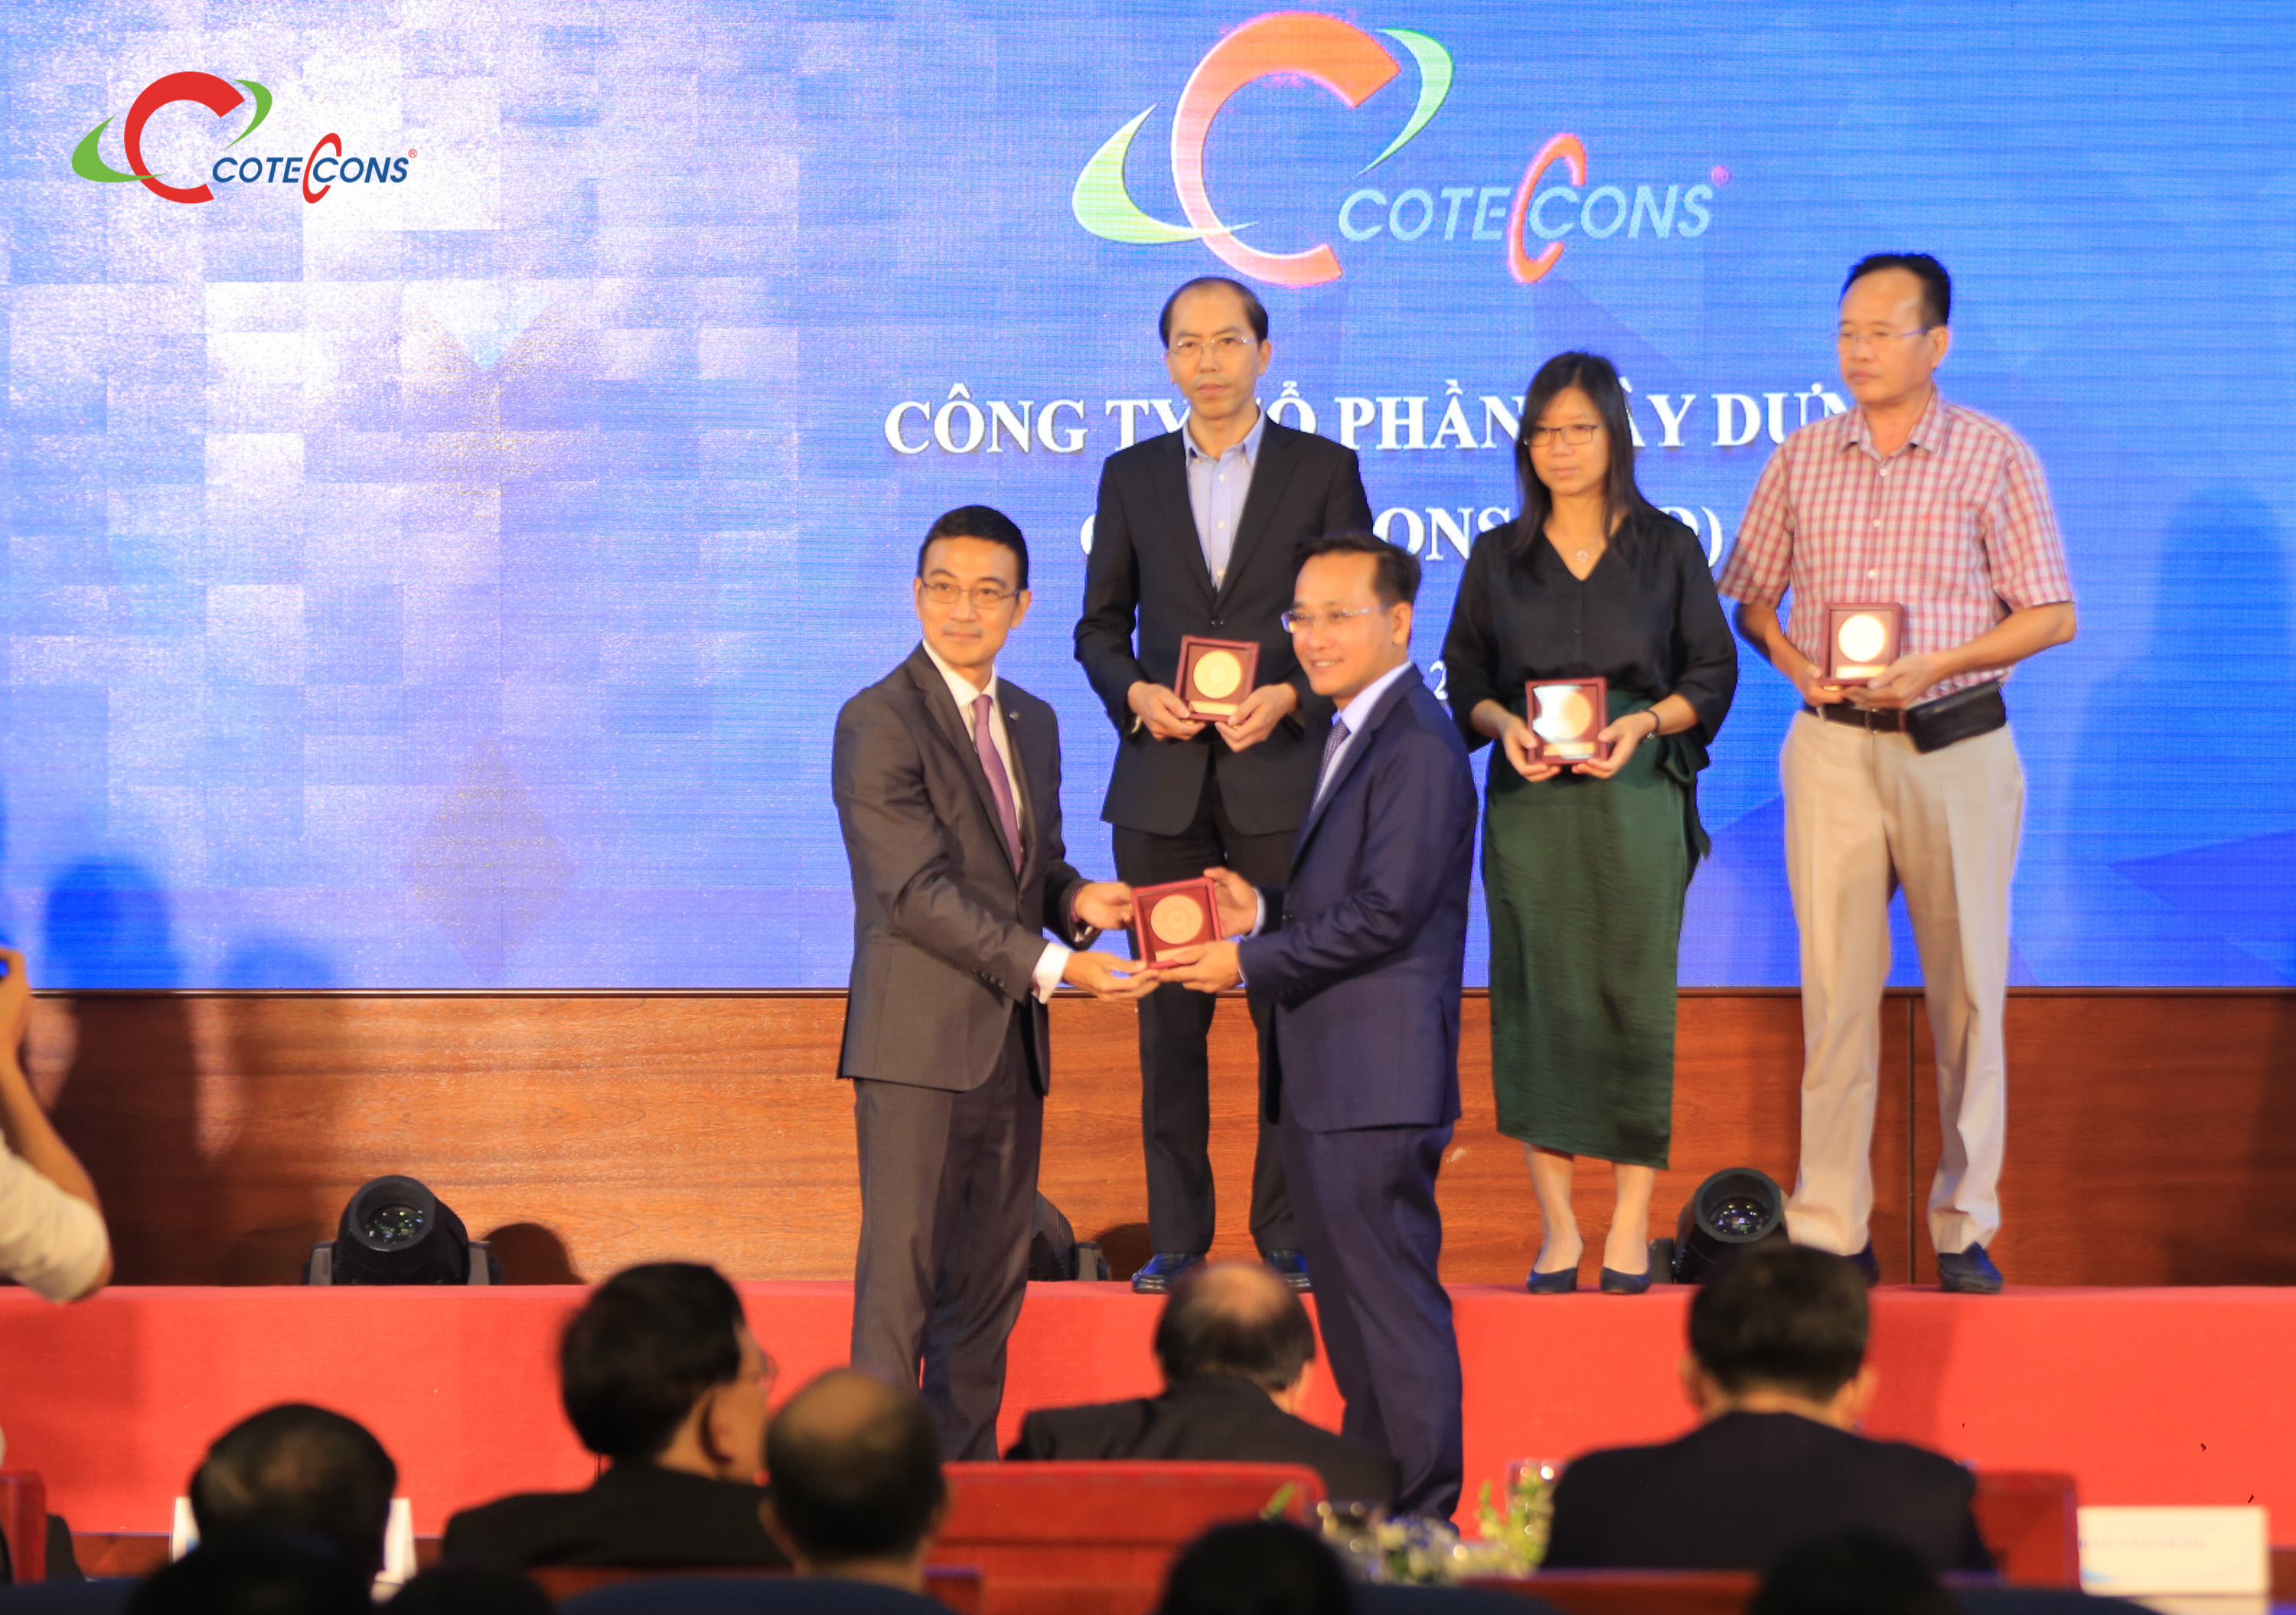 Coteccons received the Achievement Award to honor the members of Vietnam Stock Market